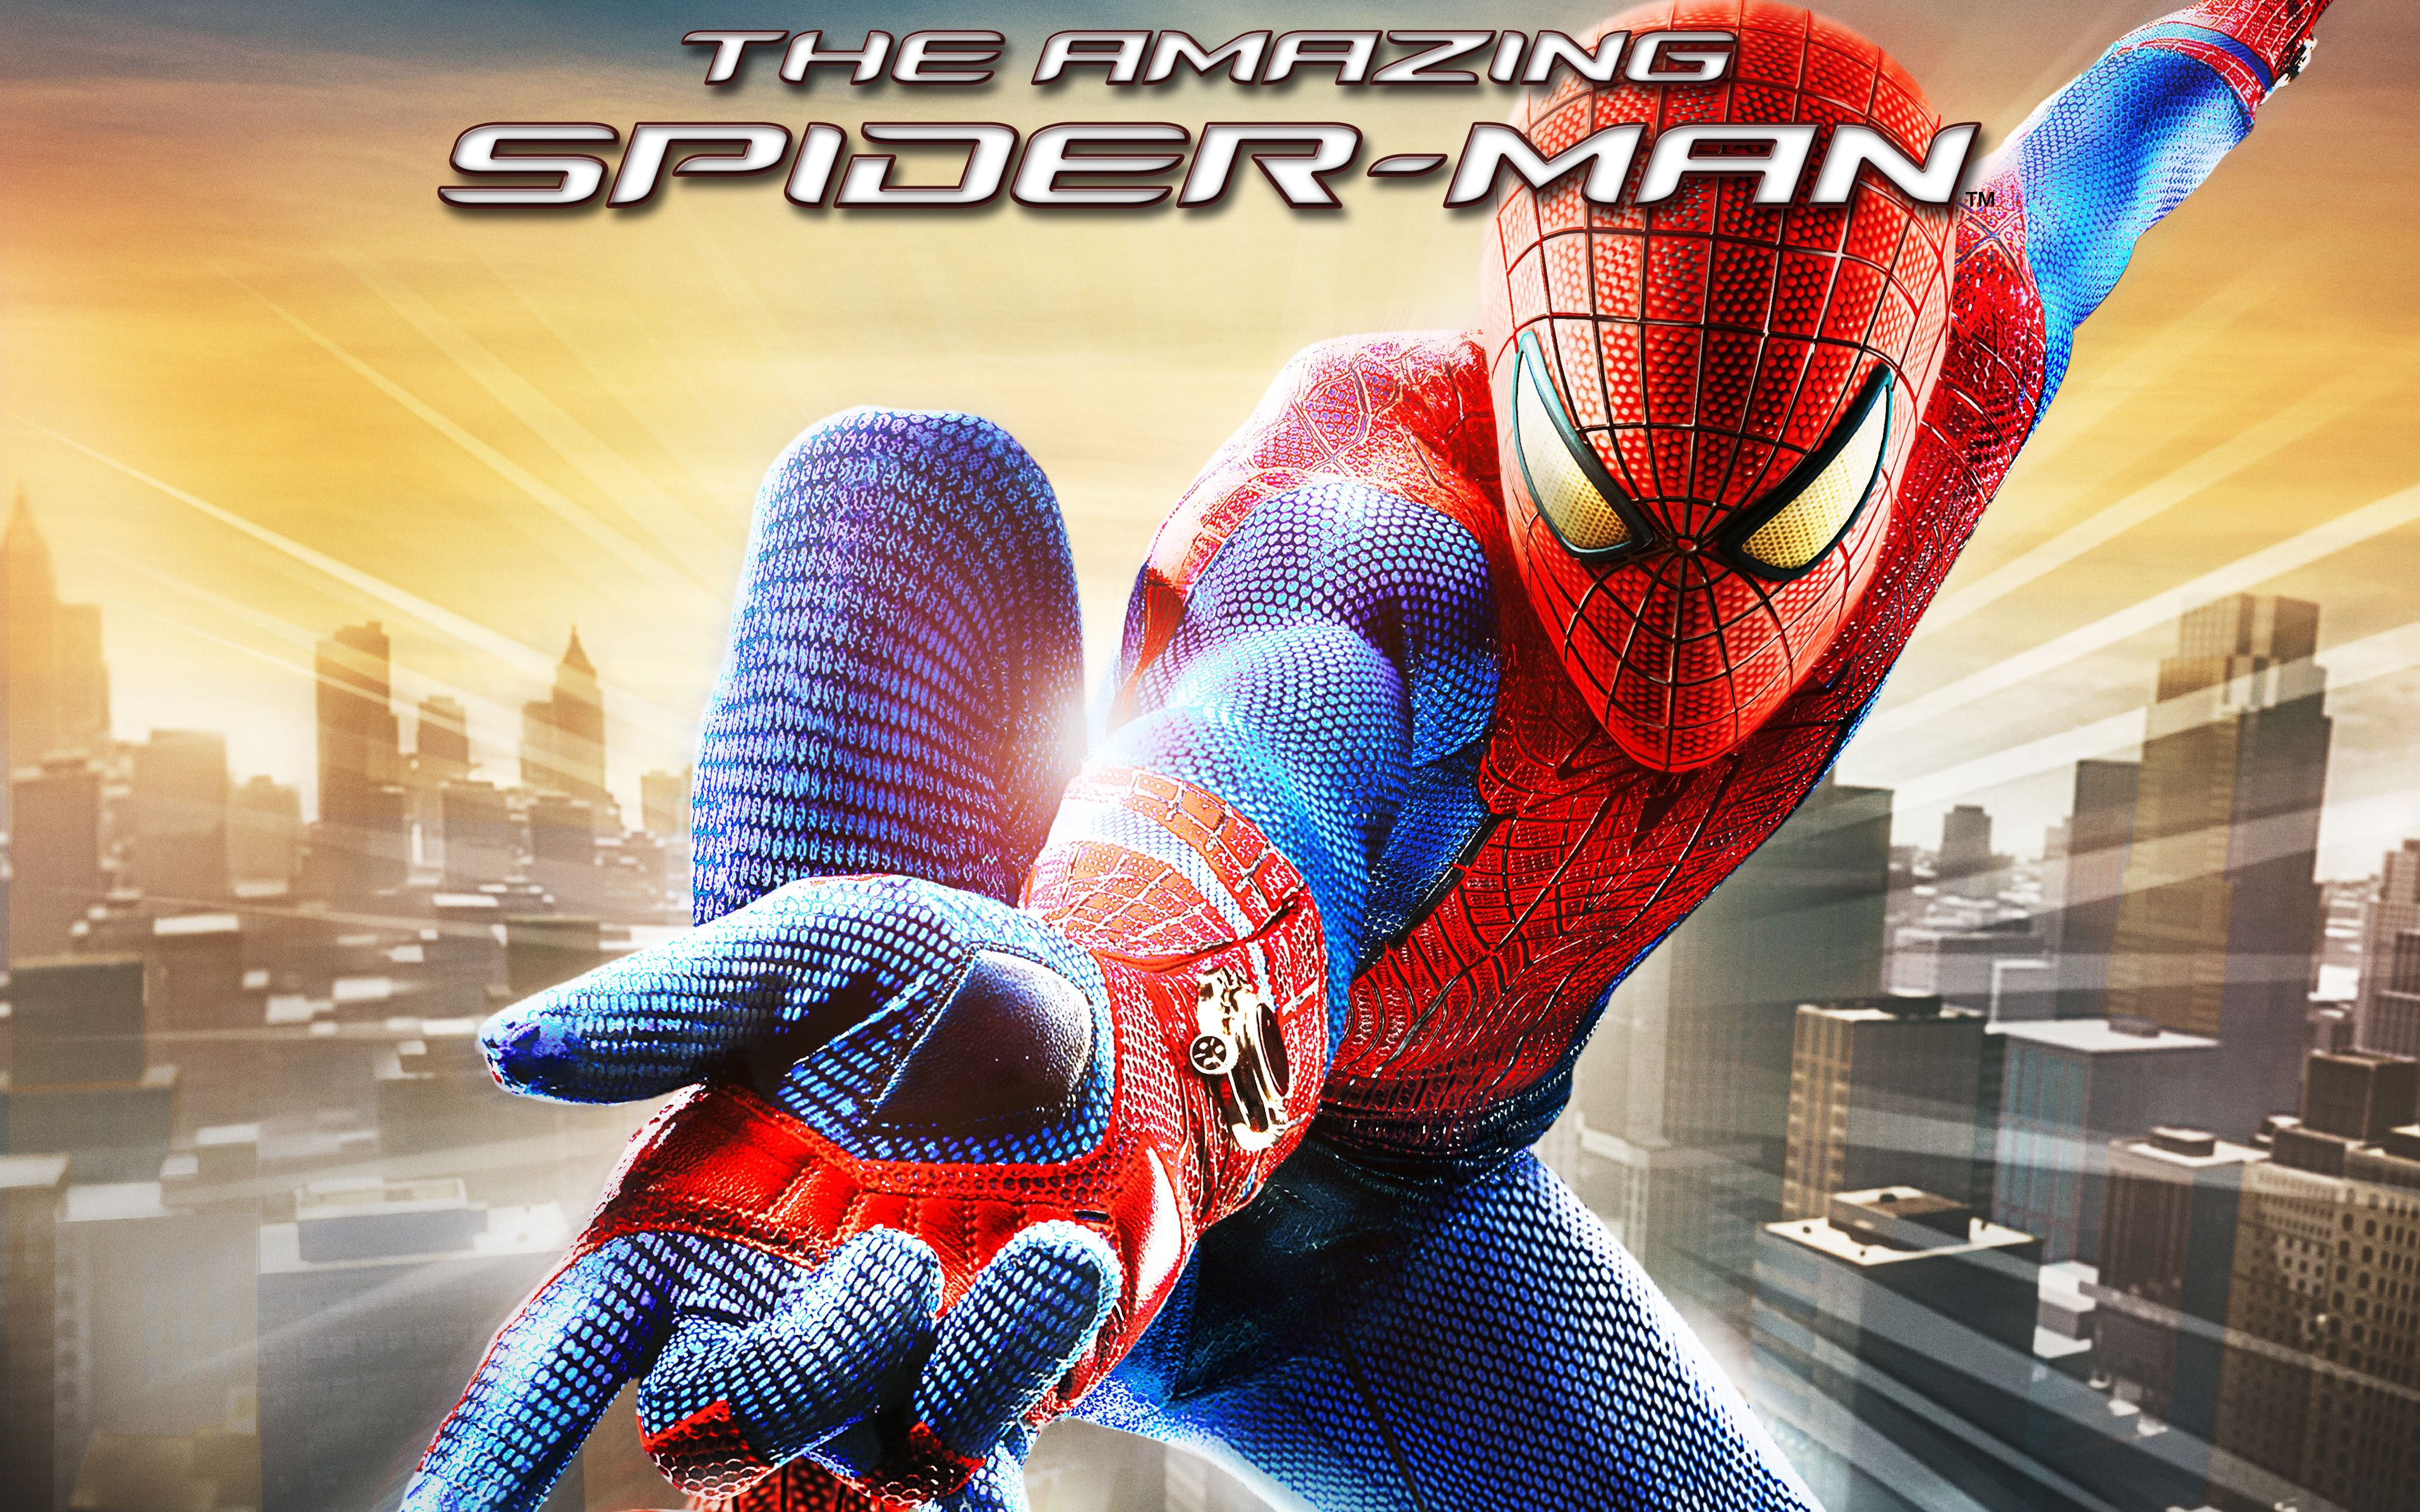 Hd Widescreen Images Collection Of The Spider Man 2 Meagan Dan